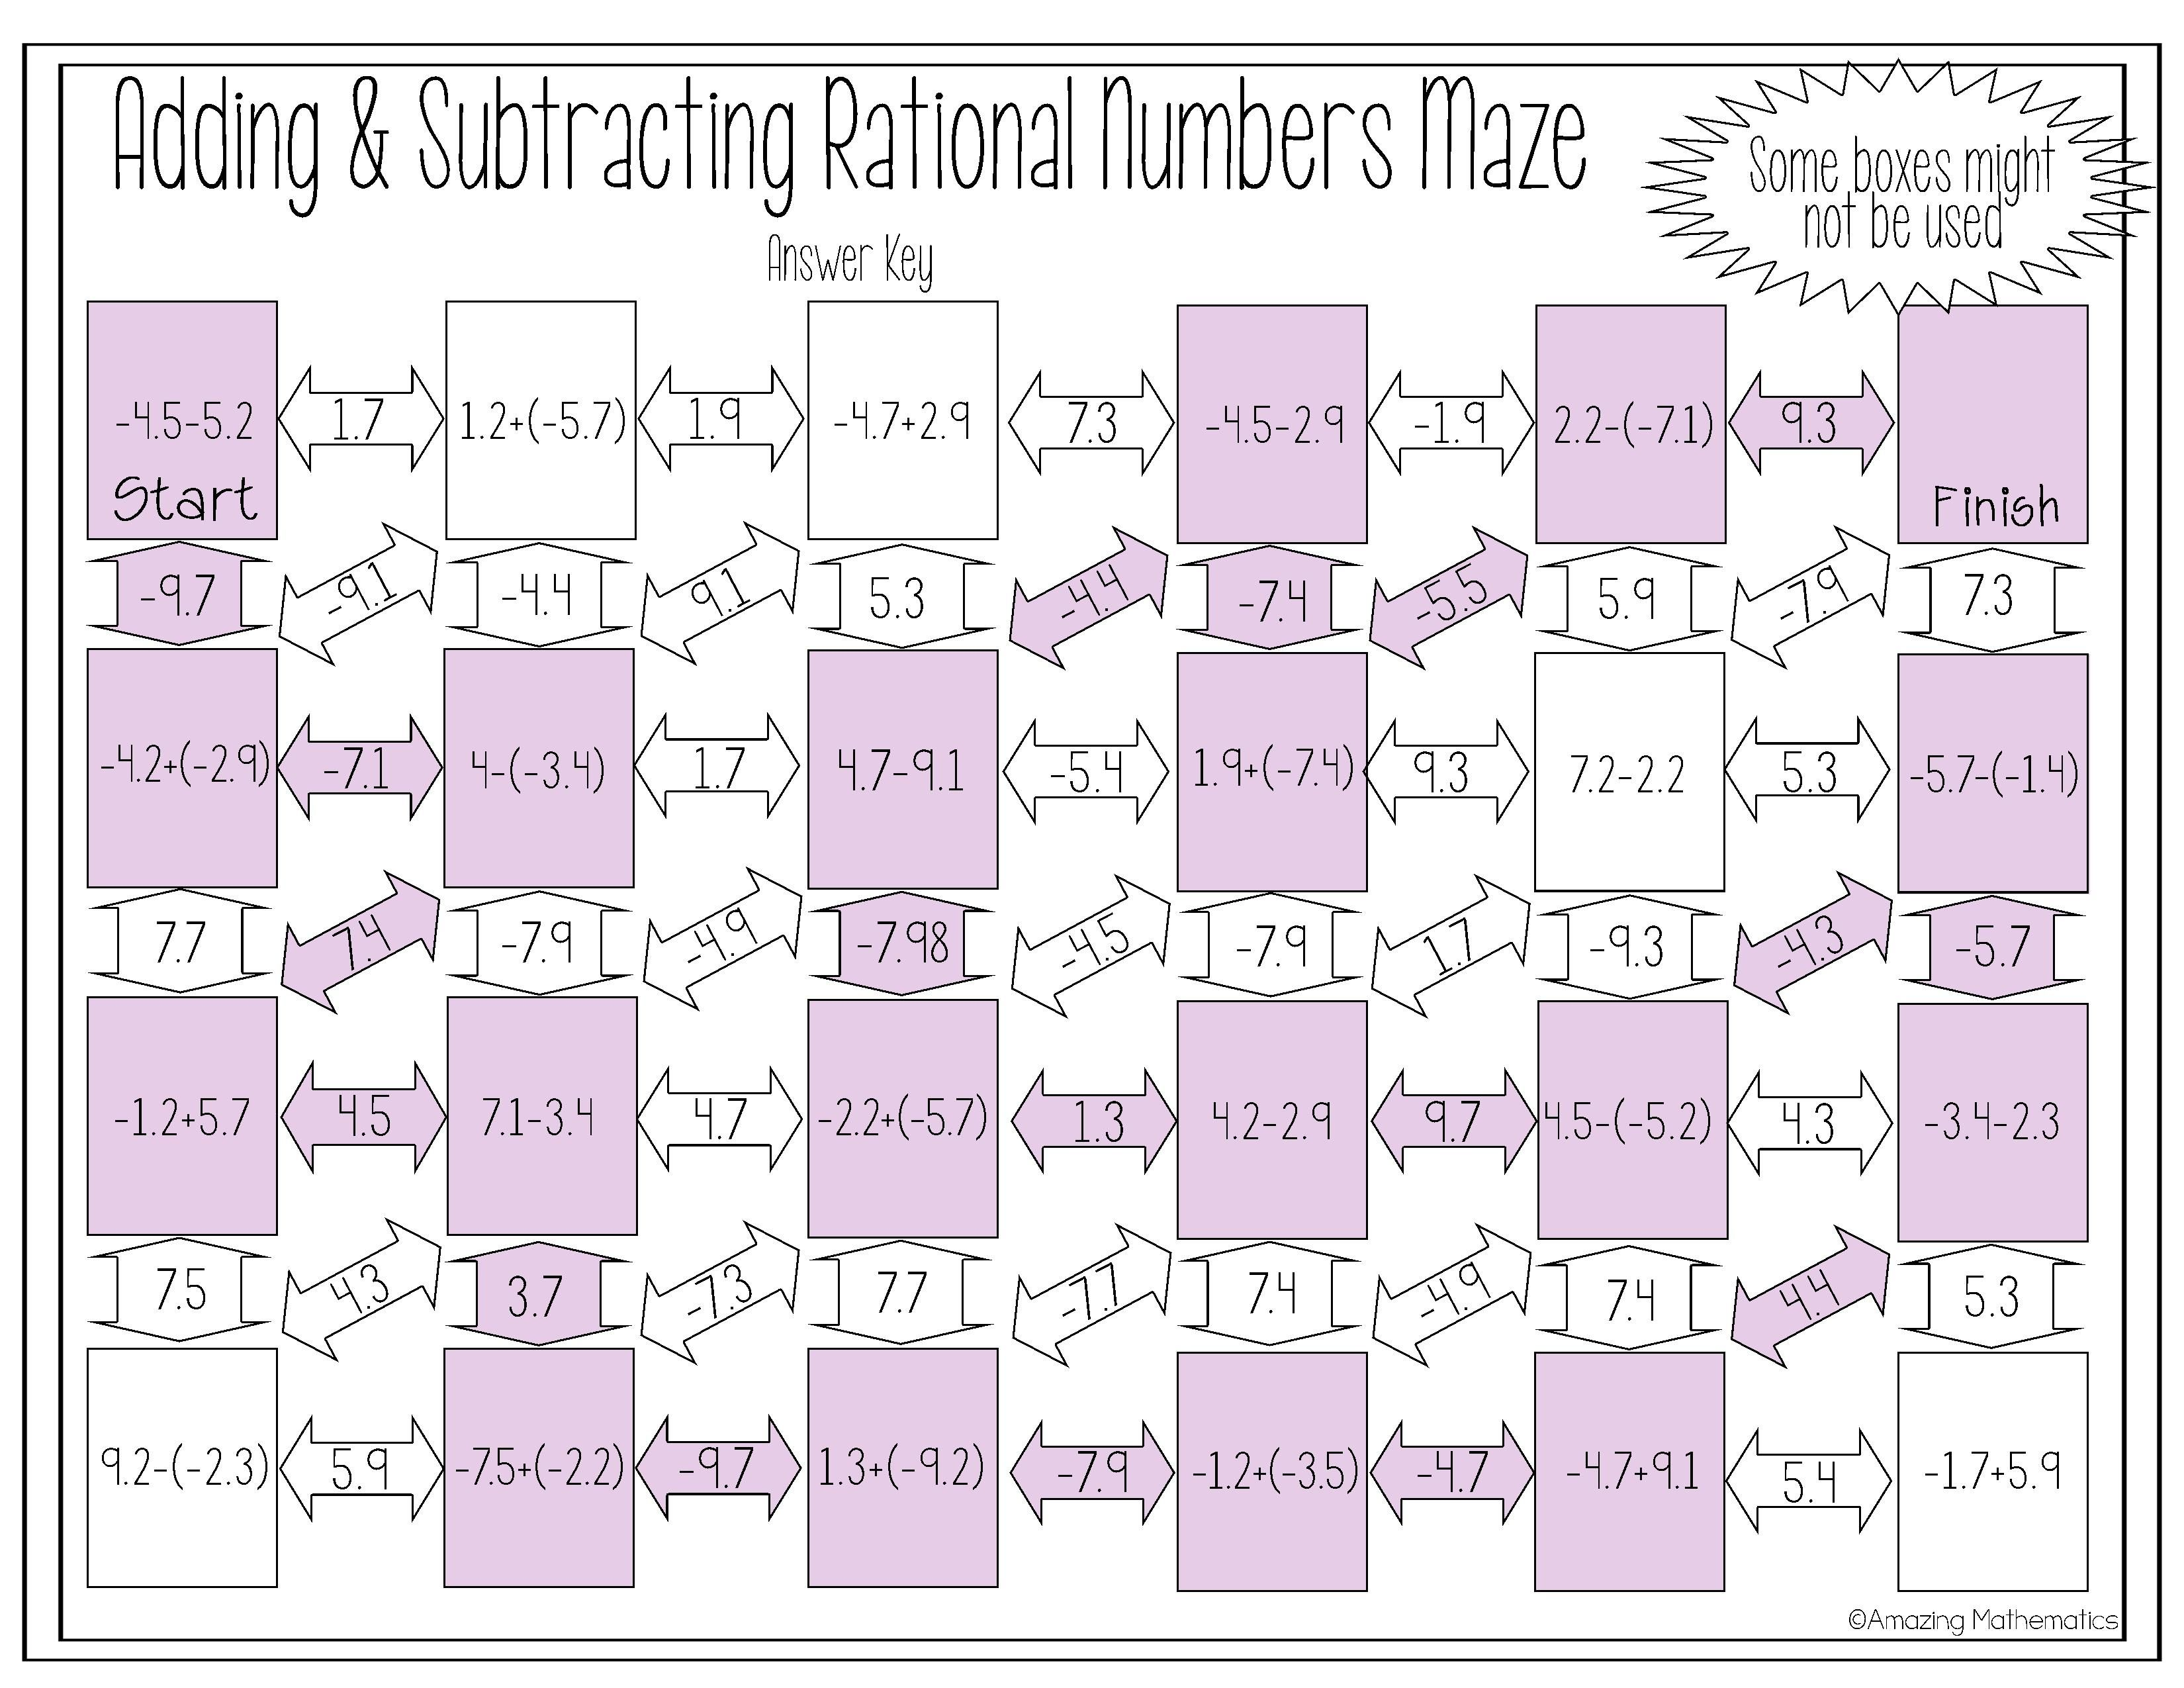 Adding Amp Subtracting Rational Numbers Maze